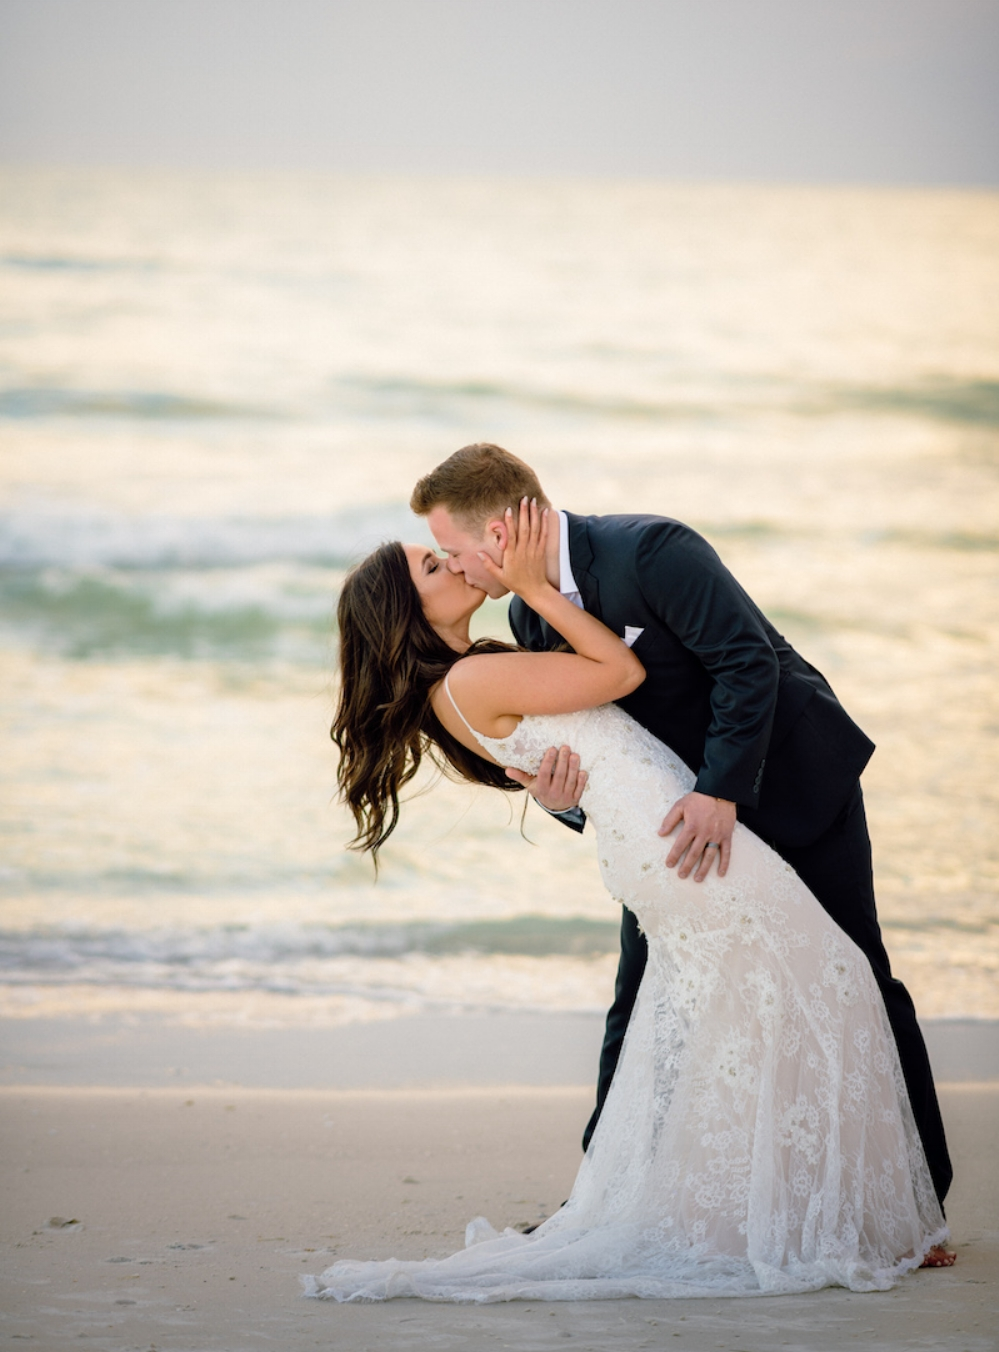 JW Marriott Marco Island Beach Weddings Matt Steeves Photography 5.jpg